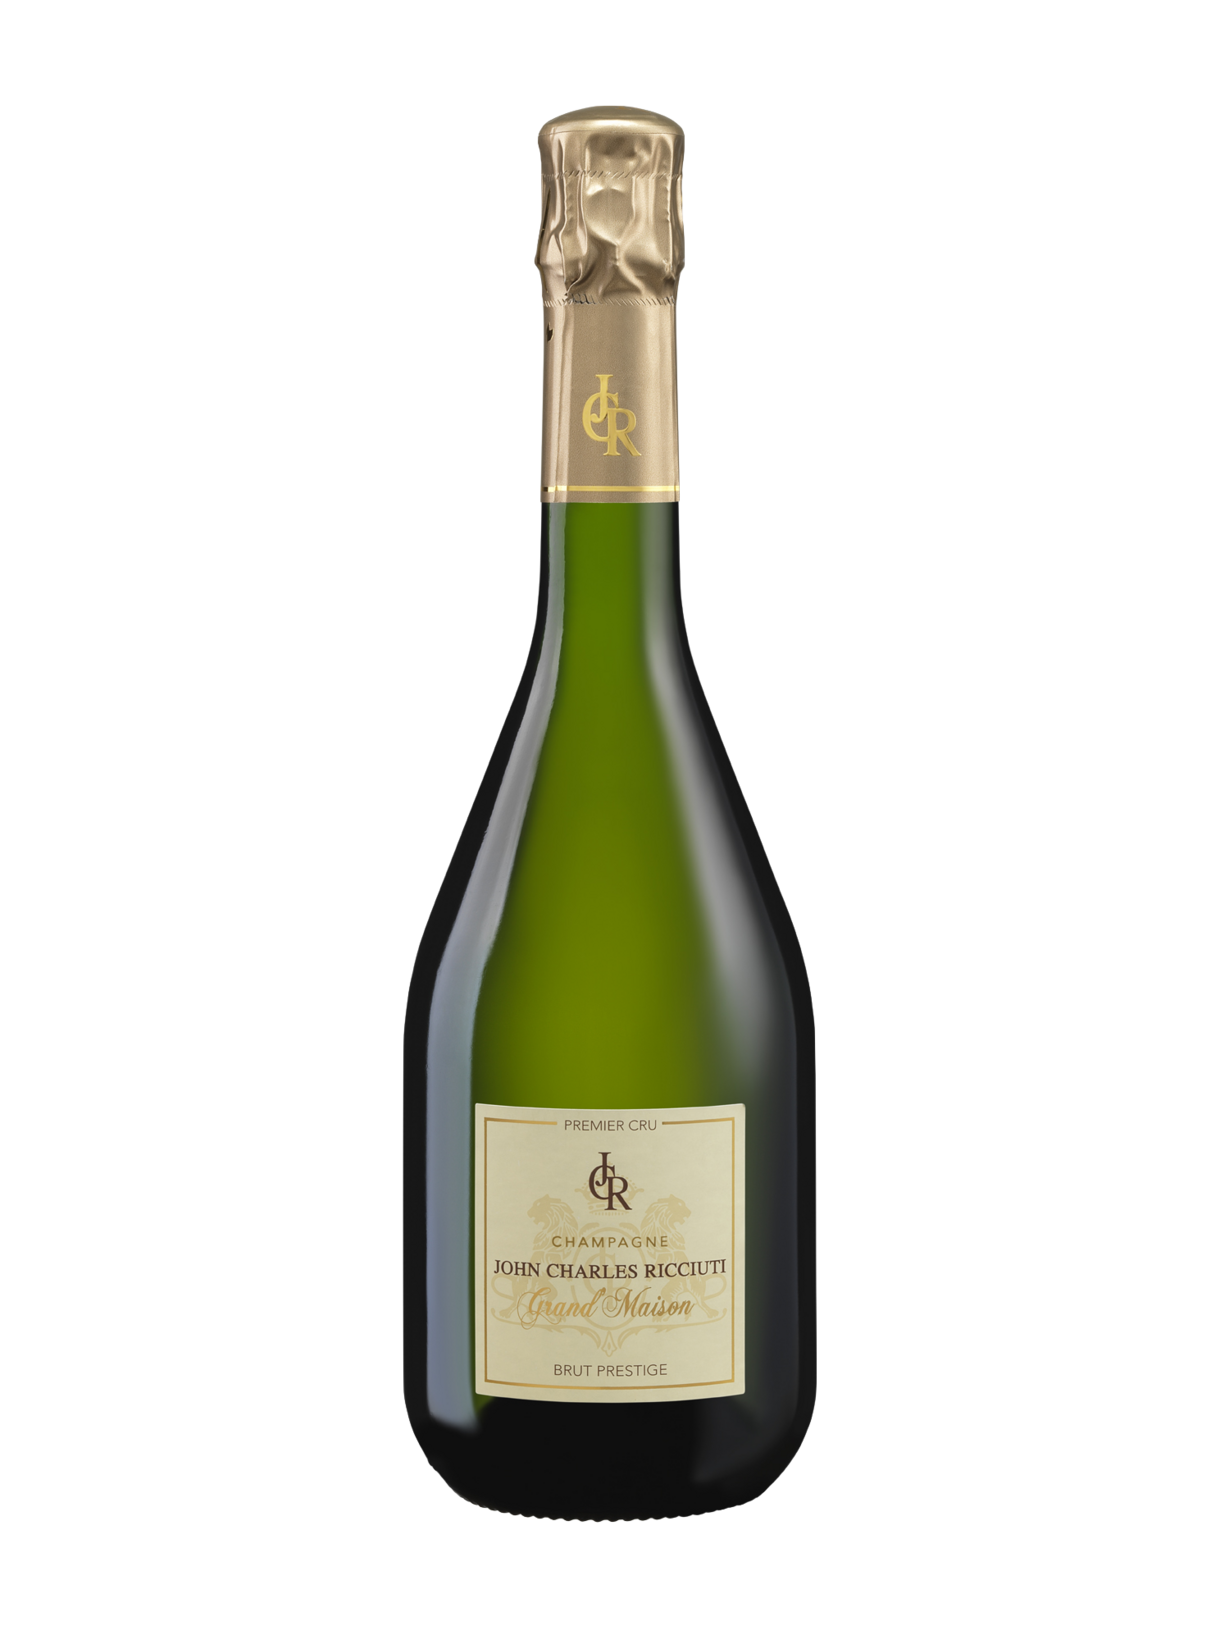 Gourmet Club Champagner